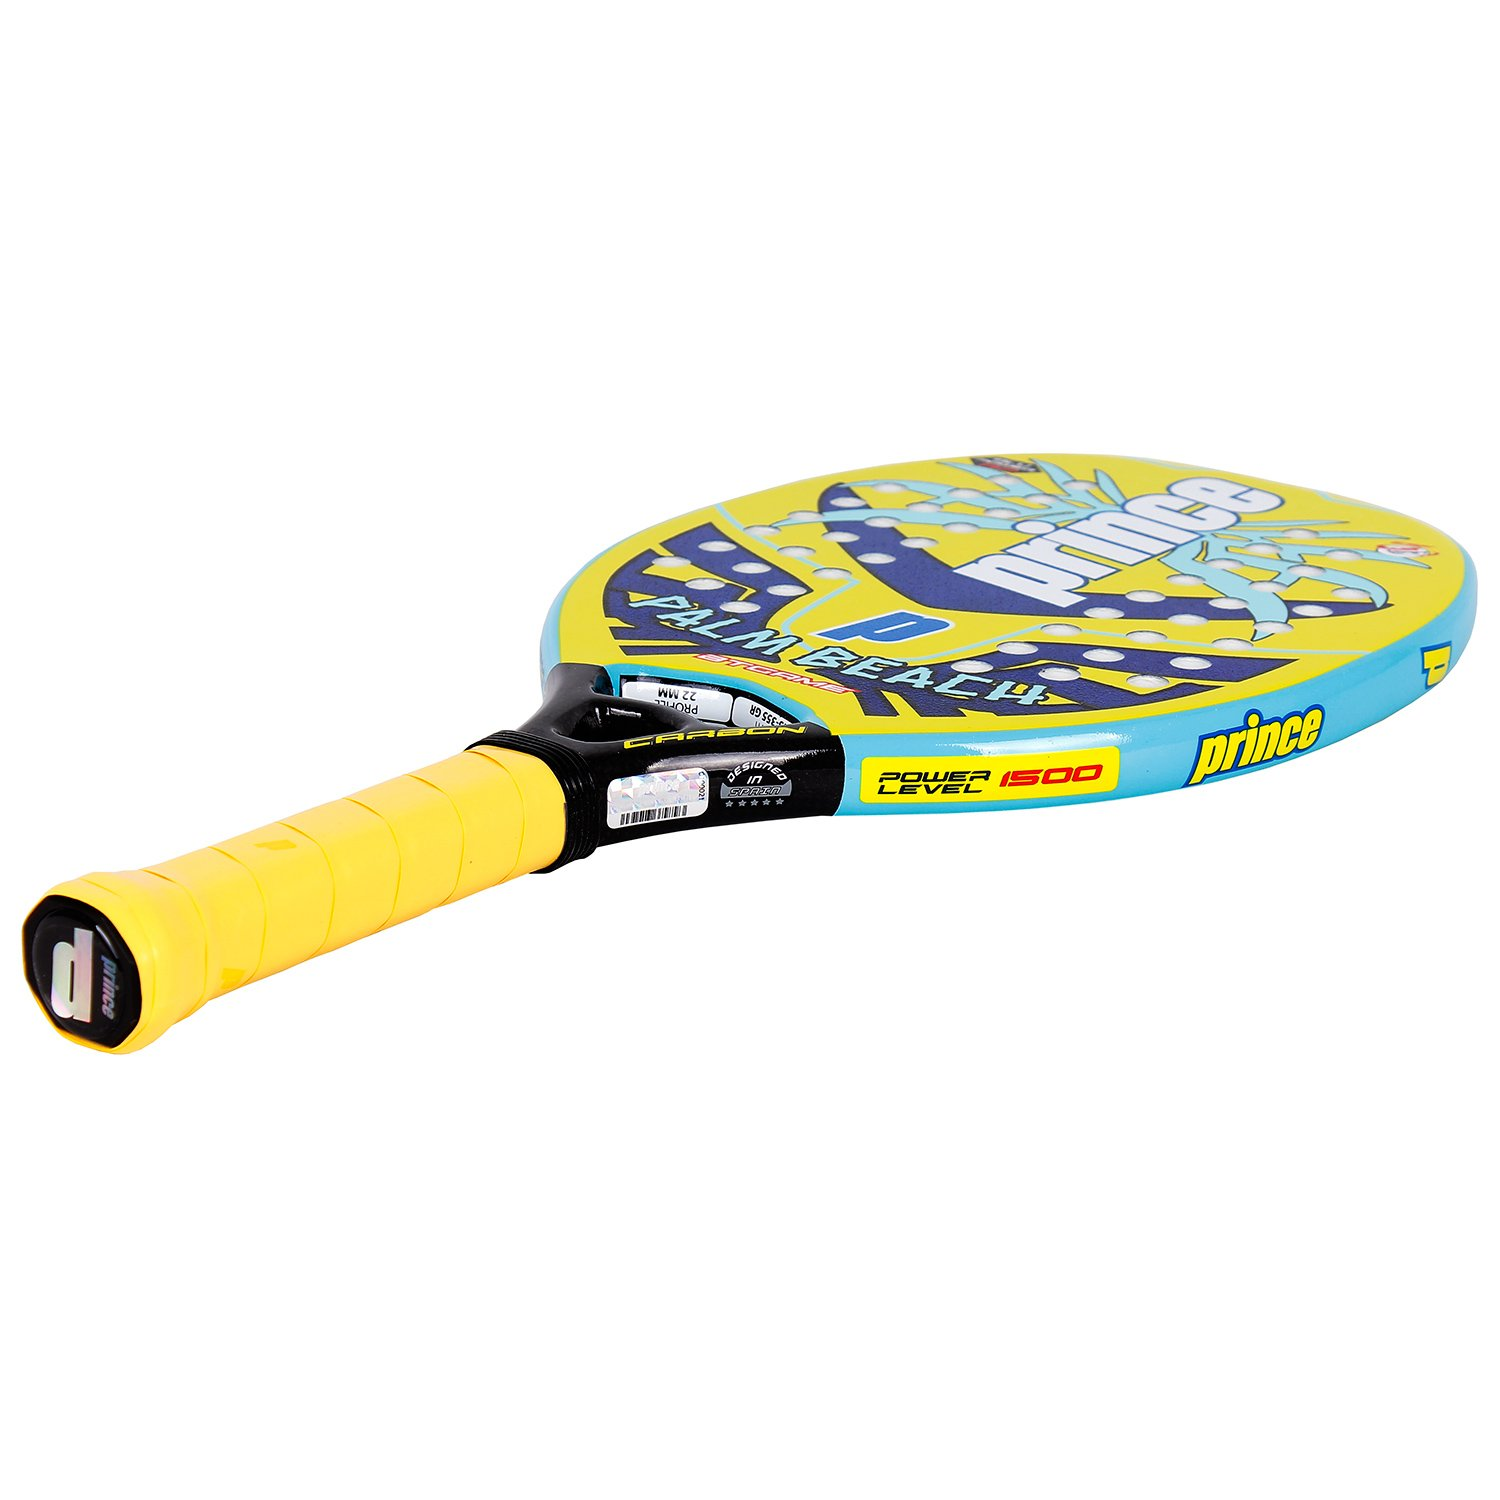 PRINCE Pala Beach Tennis Premier Palm Beach: Amazon.es: Deportes y ...